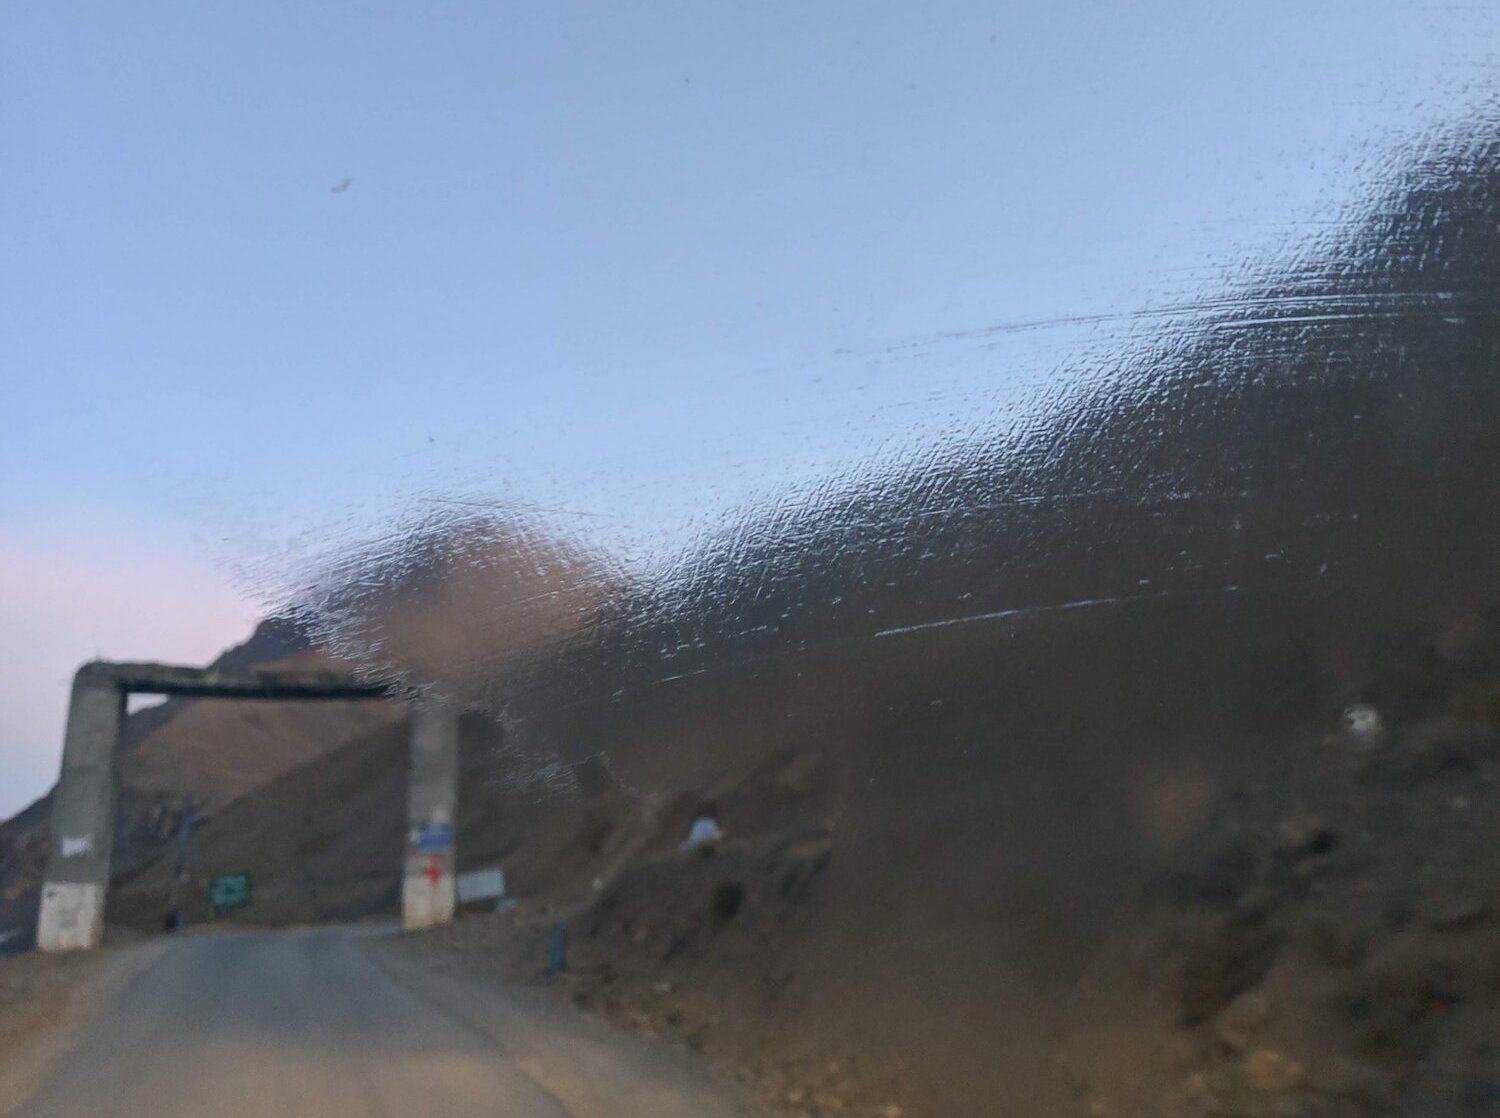 Ice sheet forms on windshield after a cold night in Kaza